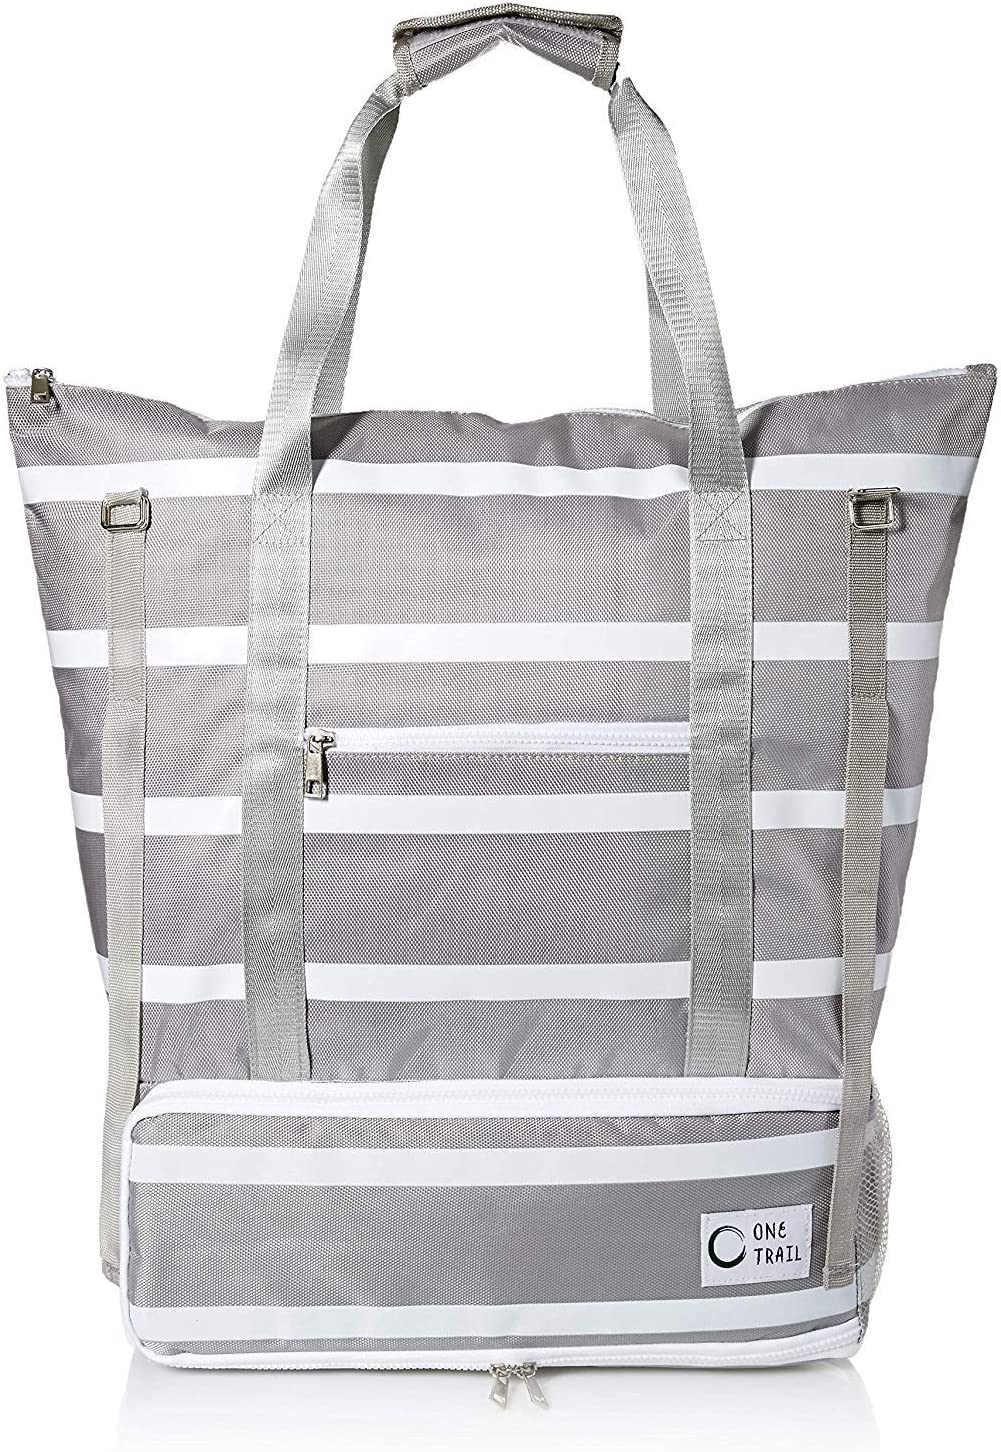 OneTrail Day-Tripper Cooler Tote   Hybrid Cooler and Tote Bag-in-One   Water Proof and Wipeable Exterior   Large Capacity…